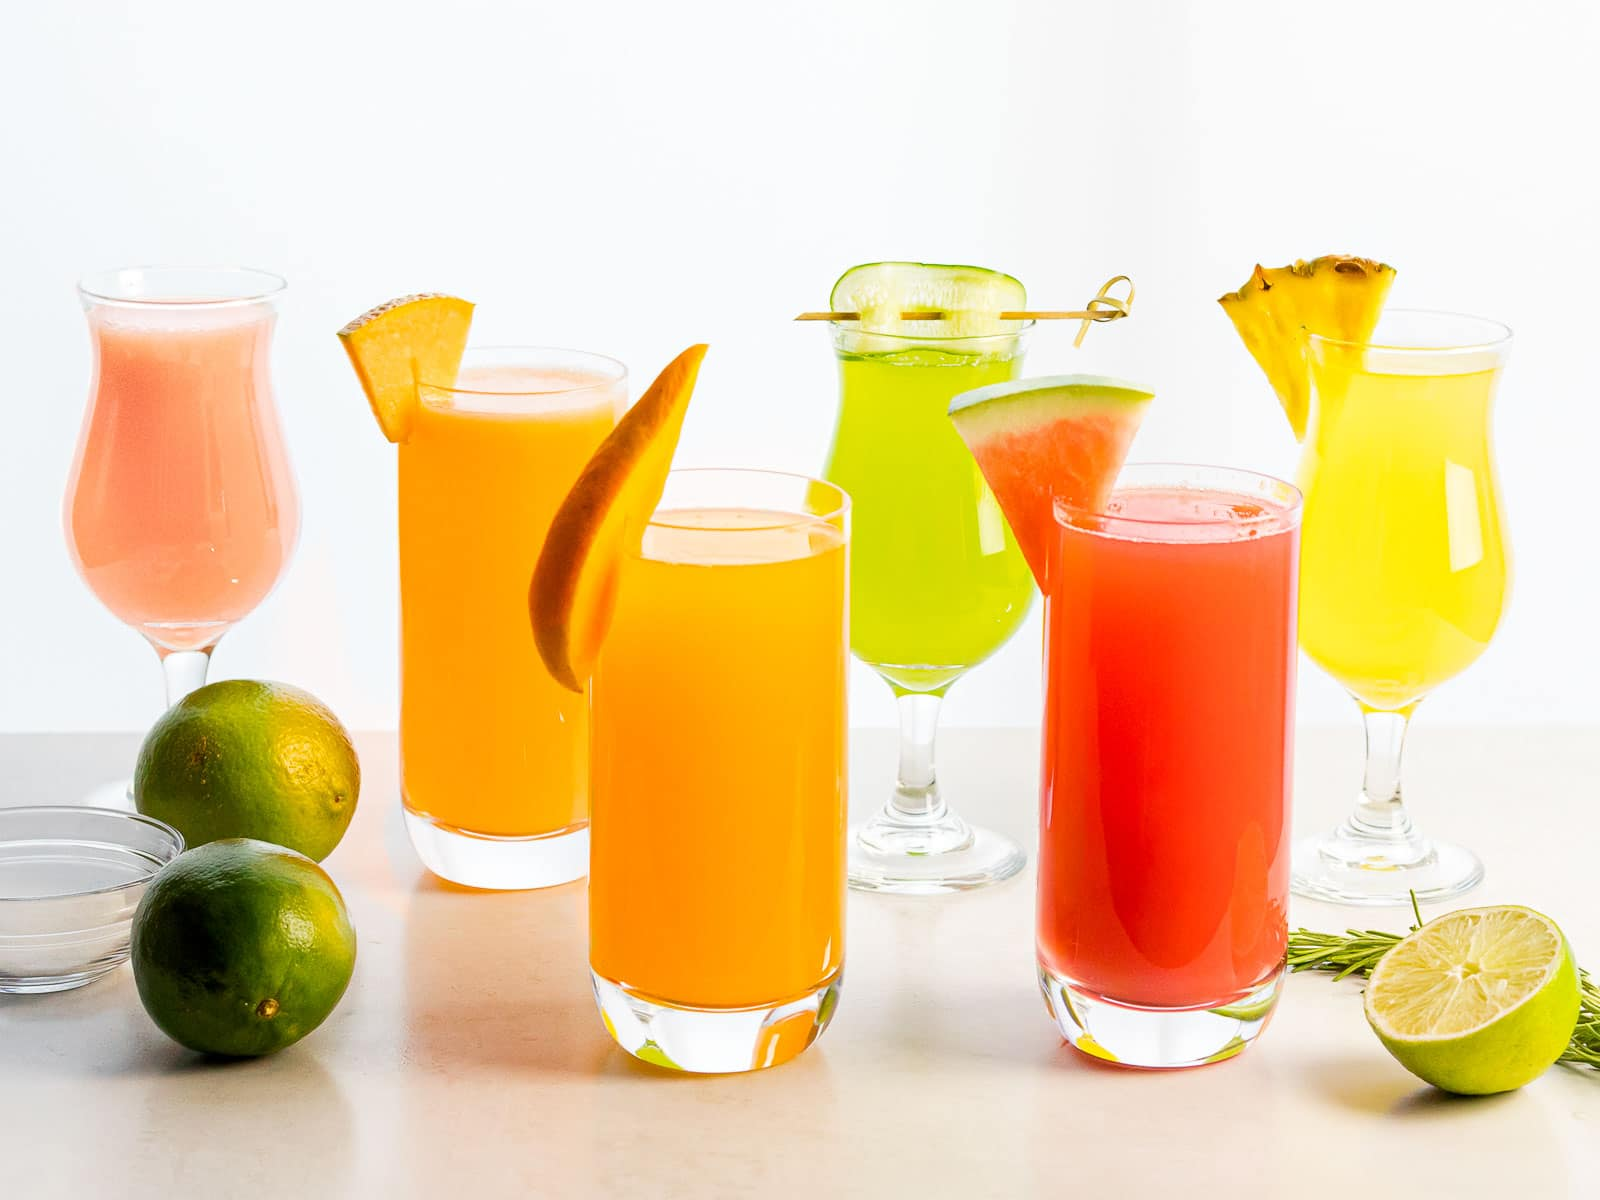 different fruit flavors of agua fresca including watermelon, cucumber, pineapple, mango, and cantaloupe next to limes